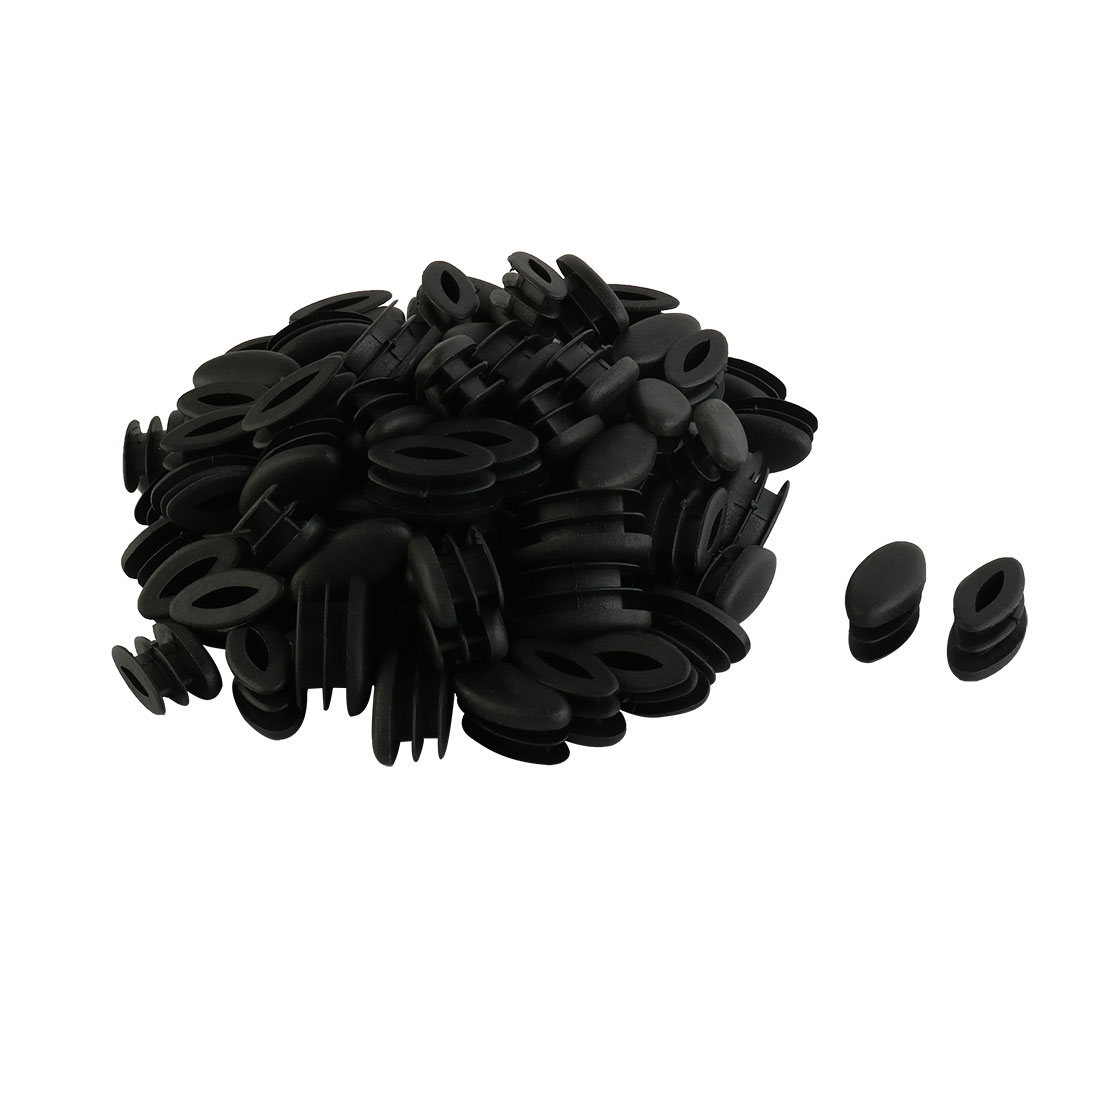 Home School Plastic Oval Shaped Table Chair Leg Feet Tube Insert Black 100 Pcs